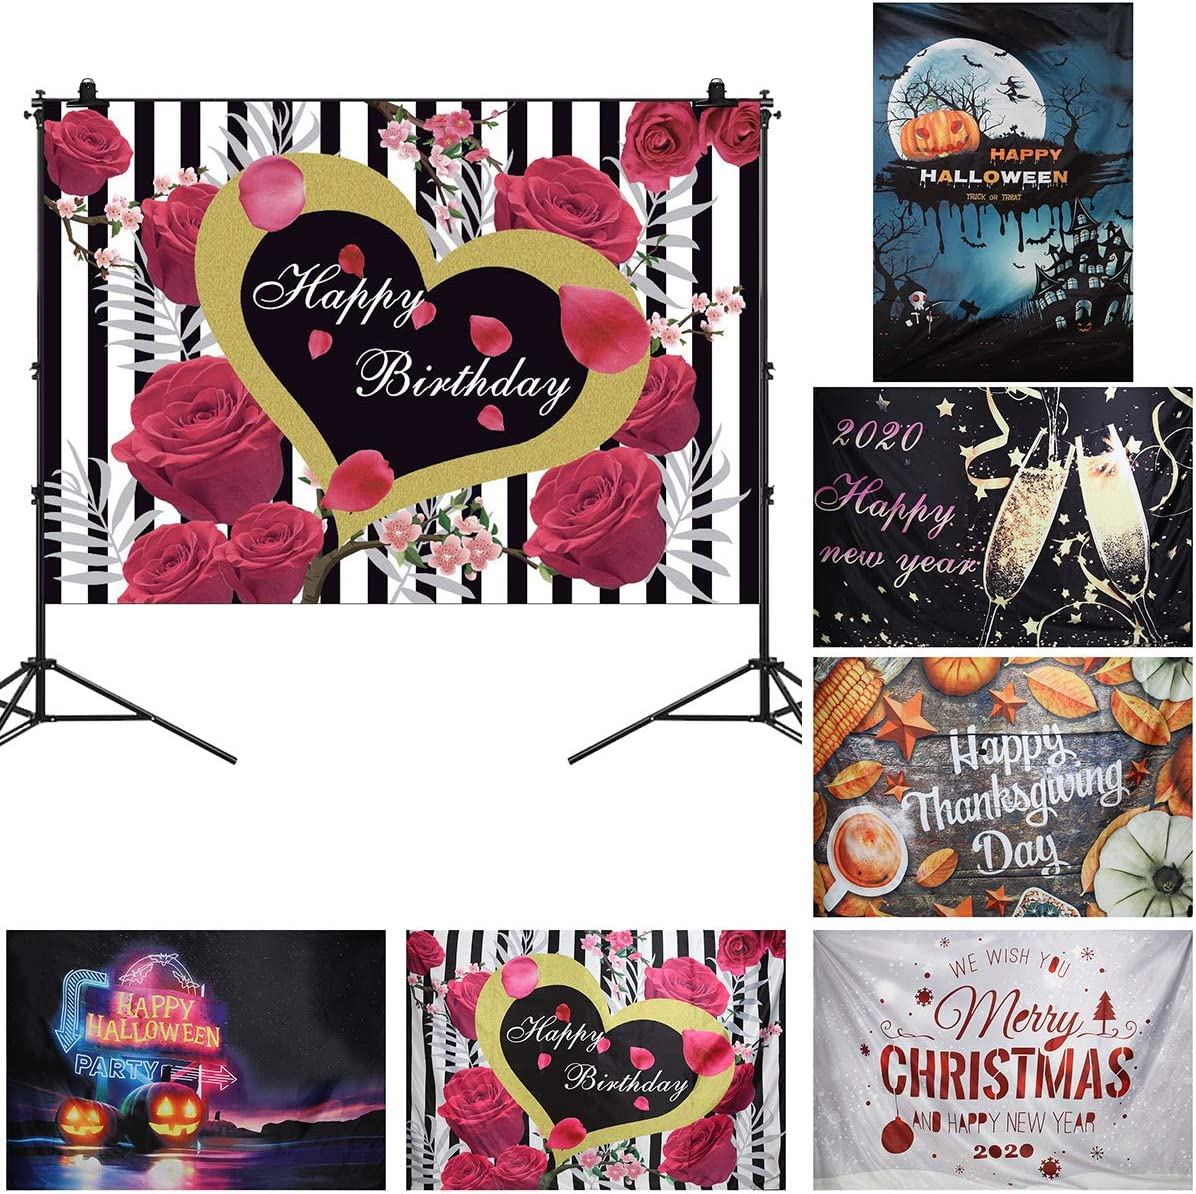 Yinuoday 7x5ft Happy Thanks Giving Day Photography Backdrop Photo Studio Backgrounds Festival Party Decoration Photo Studio Props